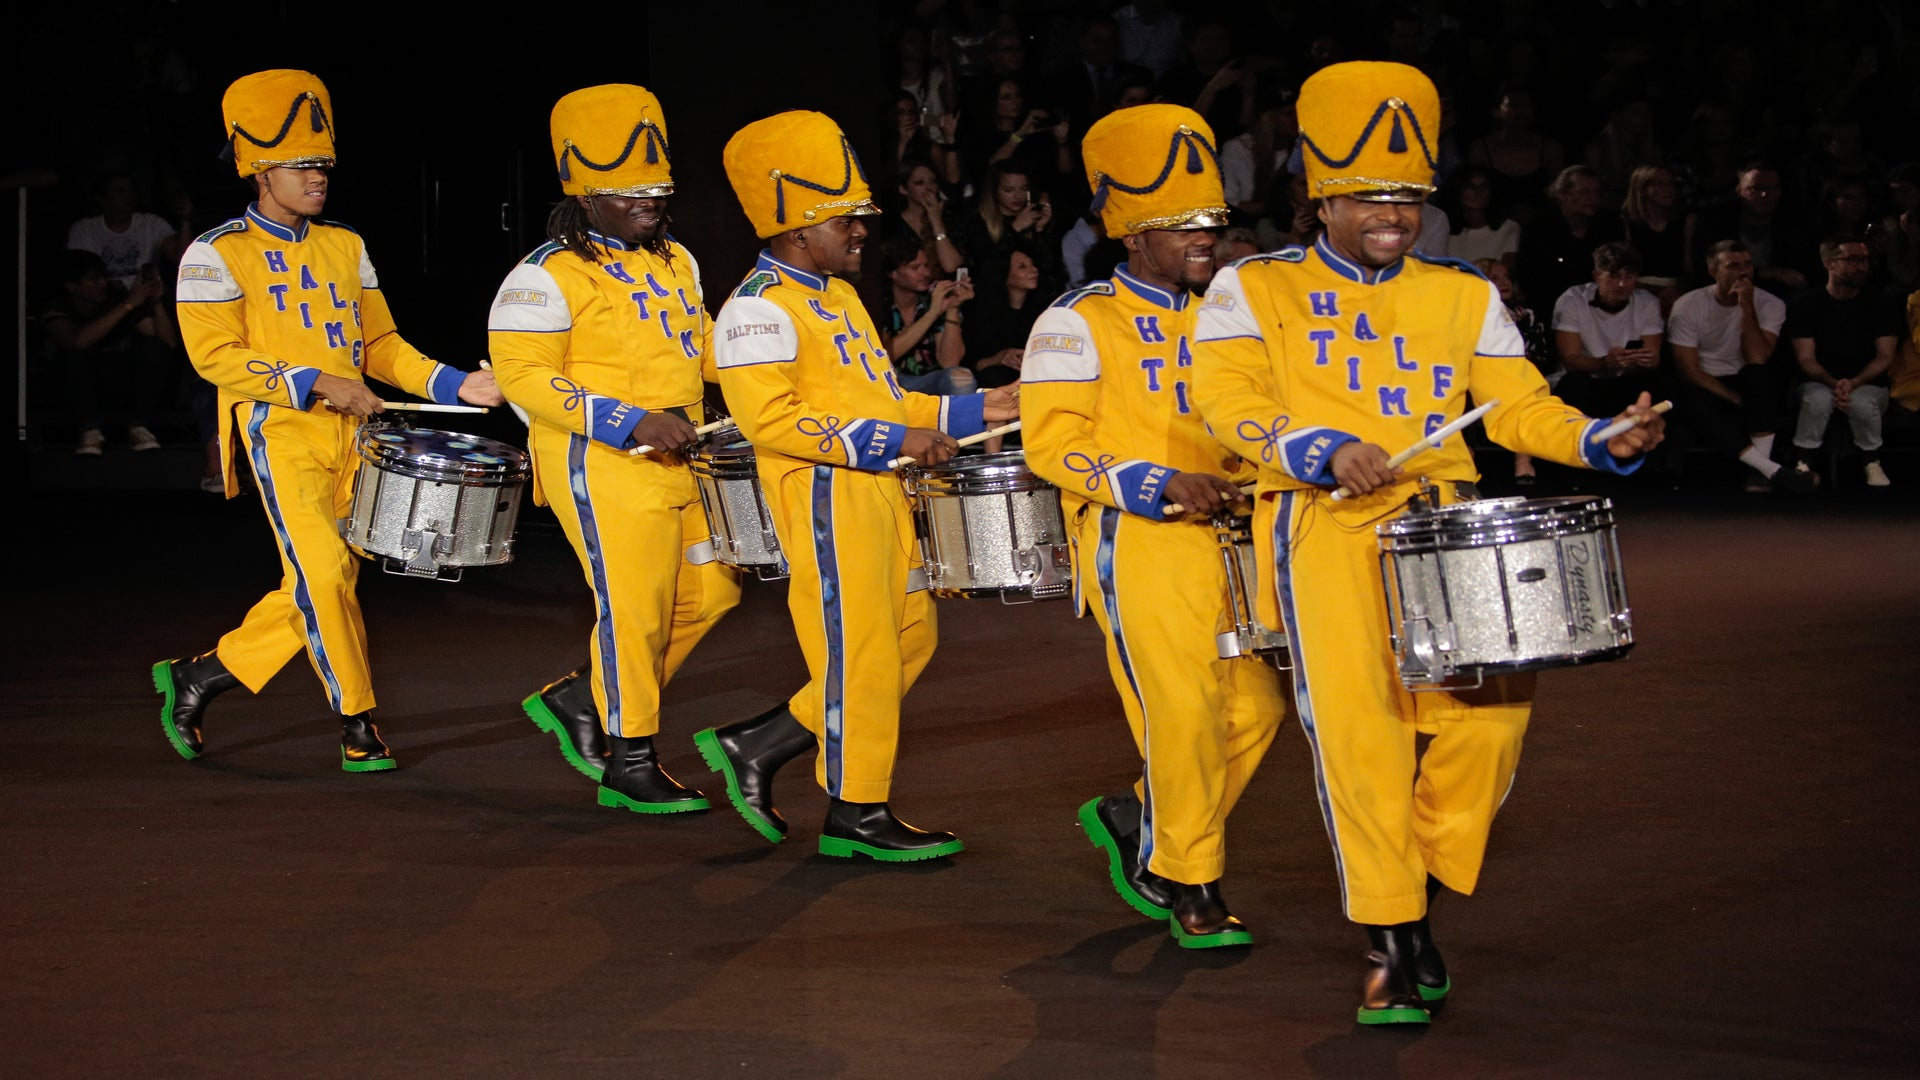 The Kenzo x H&M Launch Party Included A Performance By Ice Cube, A Drumline And So Much More